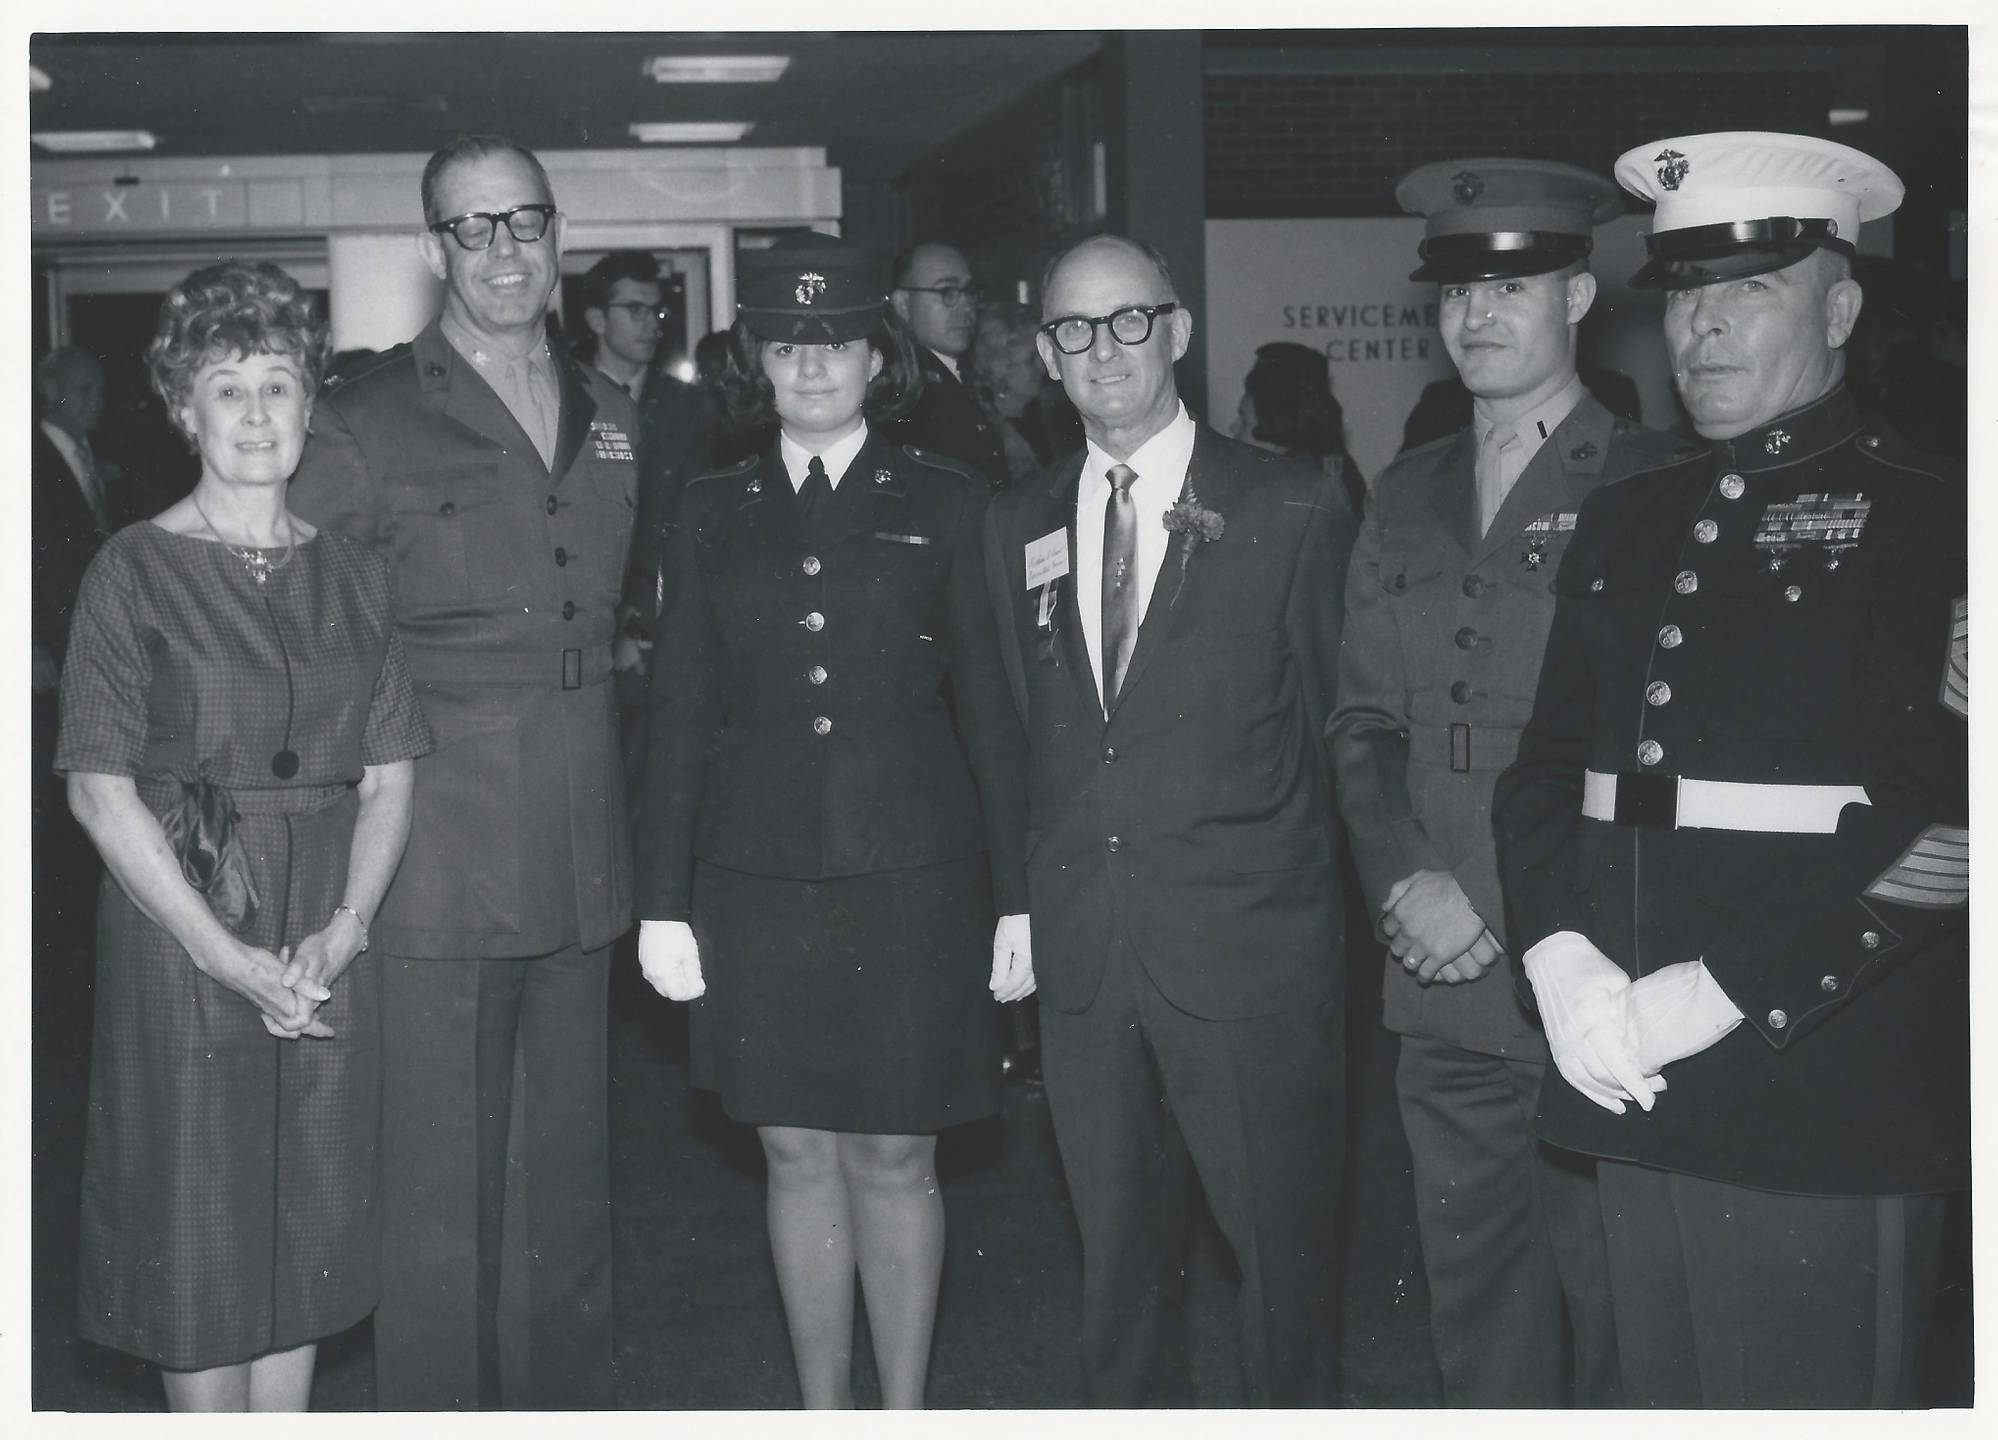 Servicemen and servicewoman and a civilian woman pose for a photo.